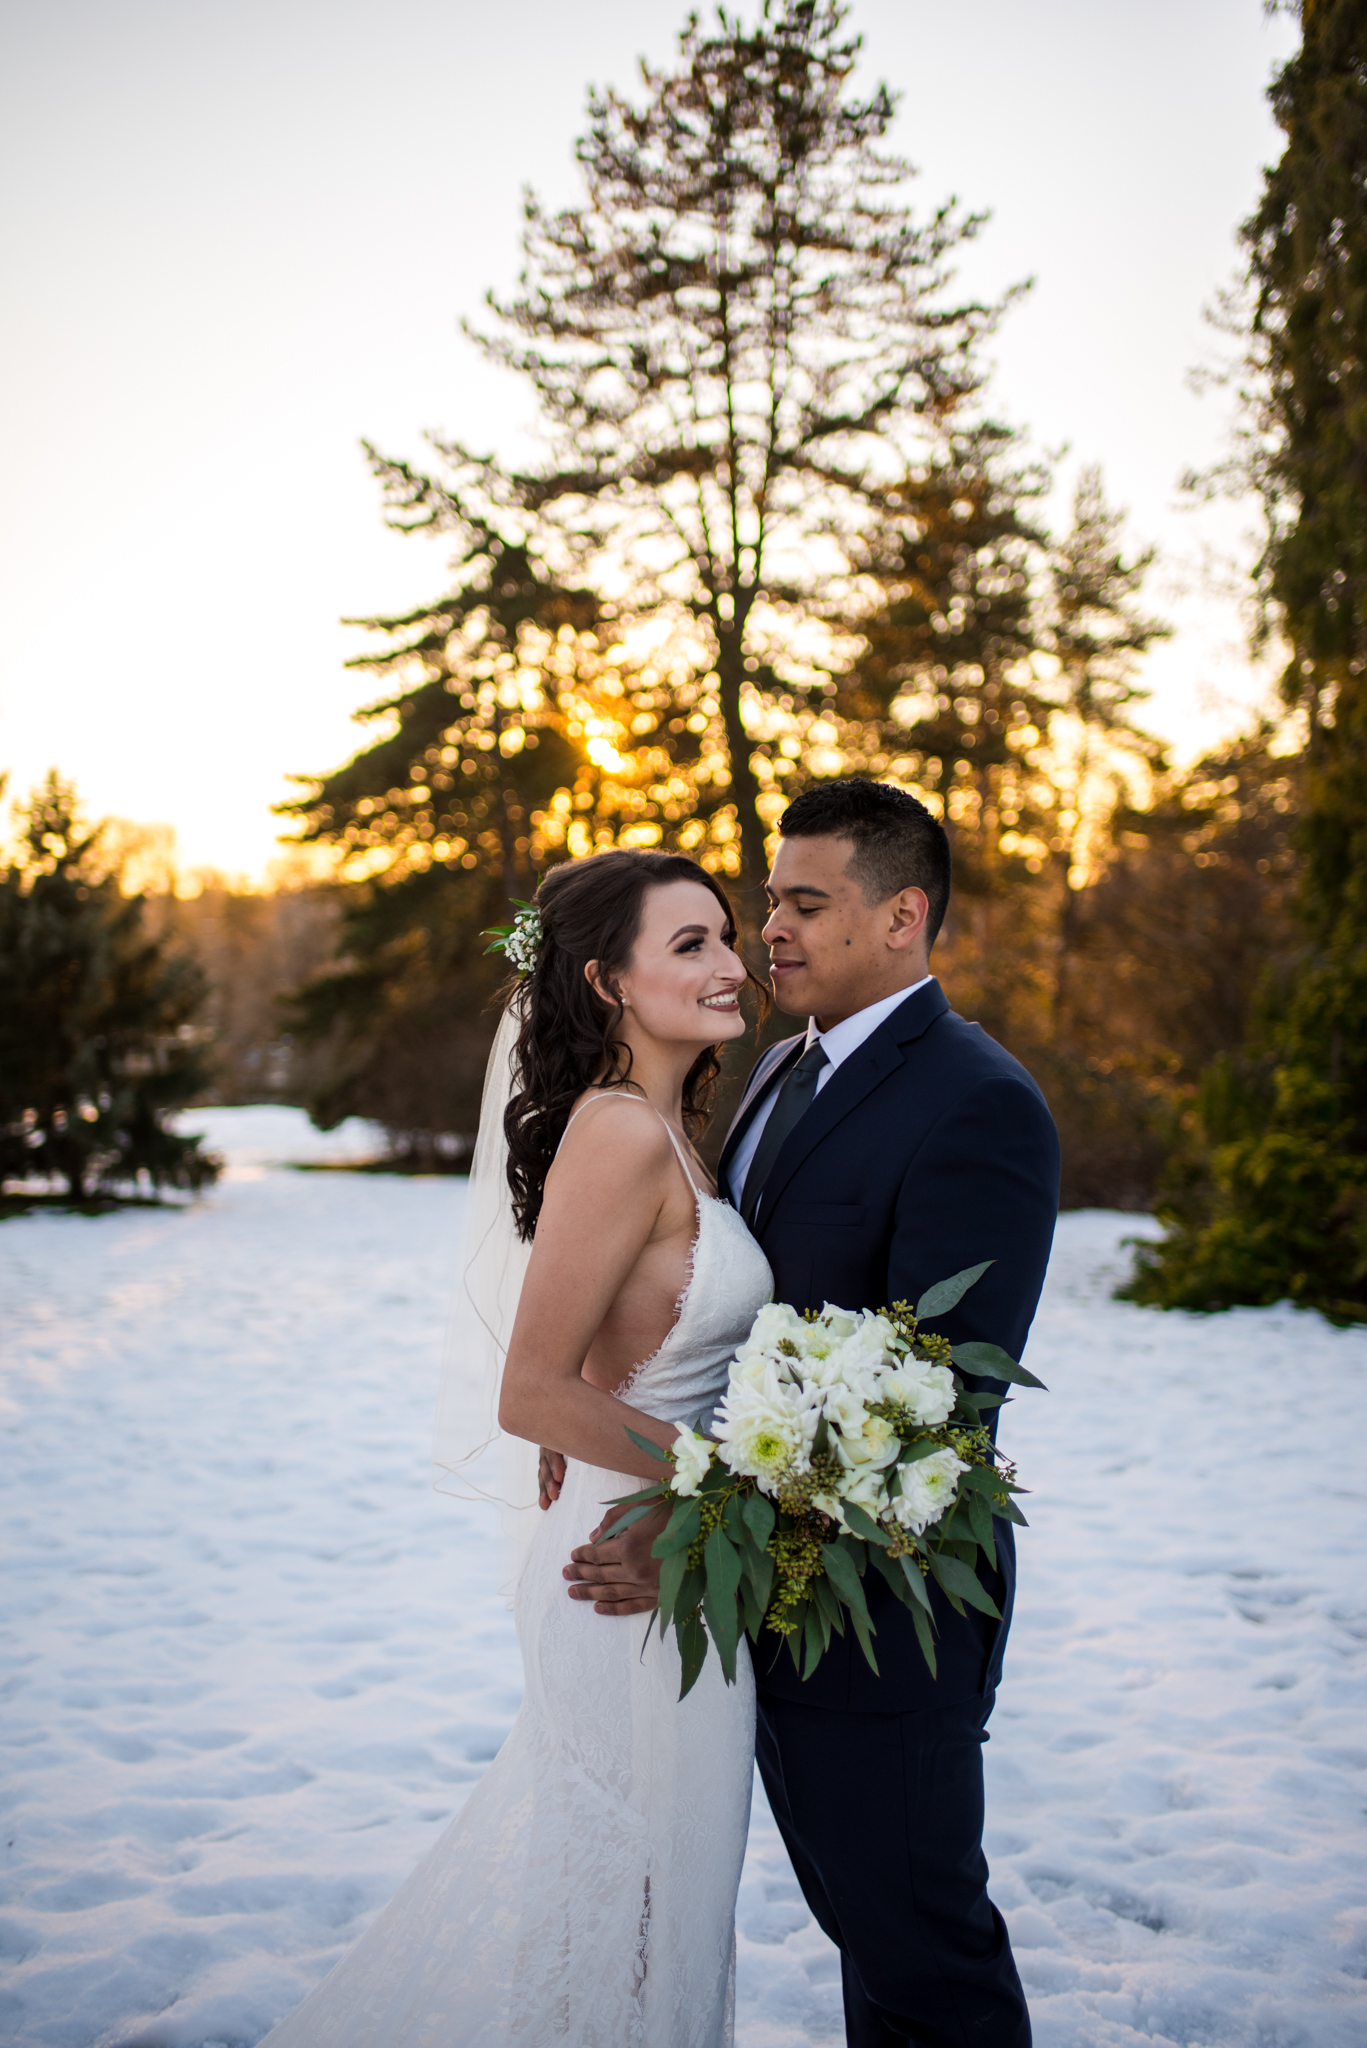 Queen Elizabeth Park Wedding Photographer-50.jpg